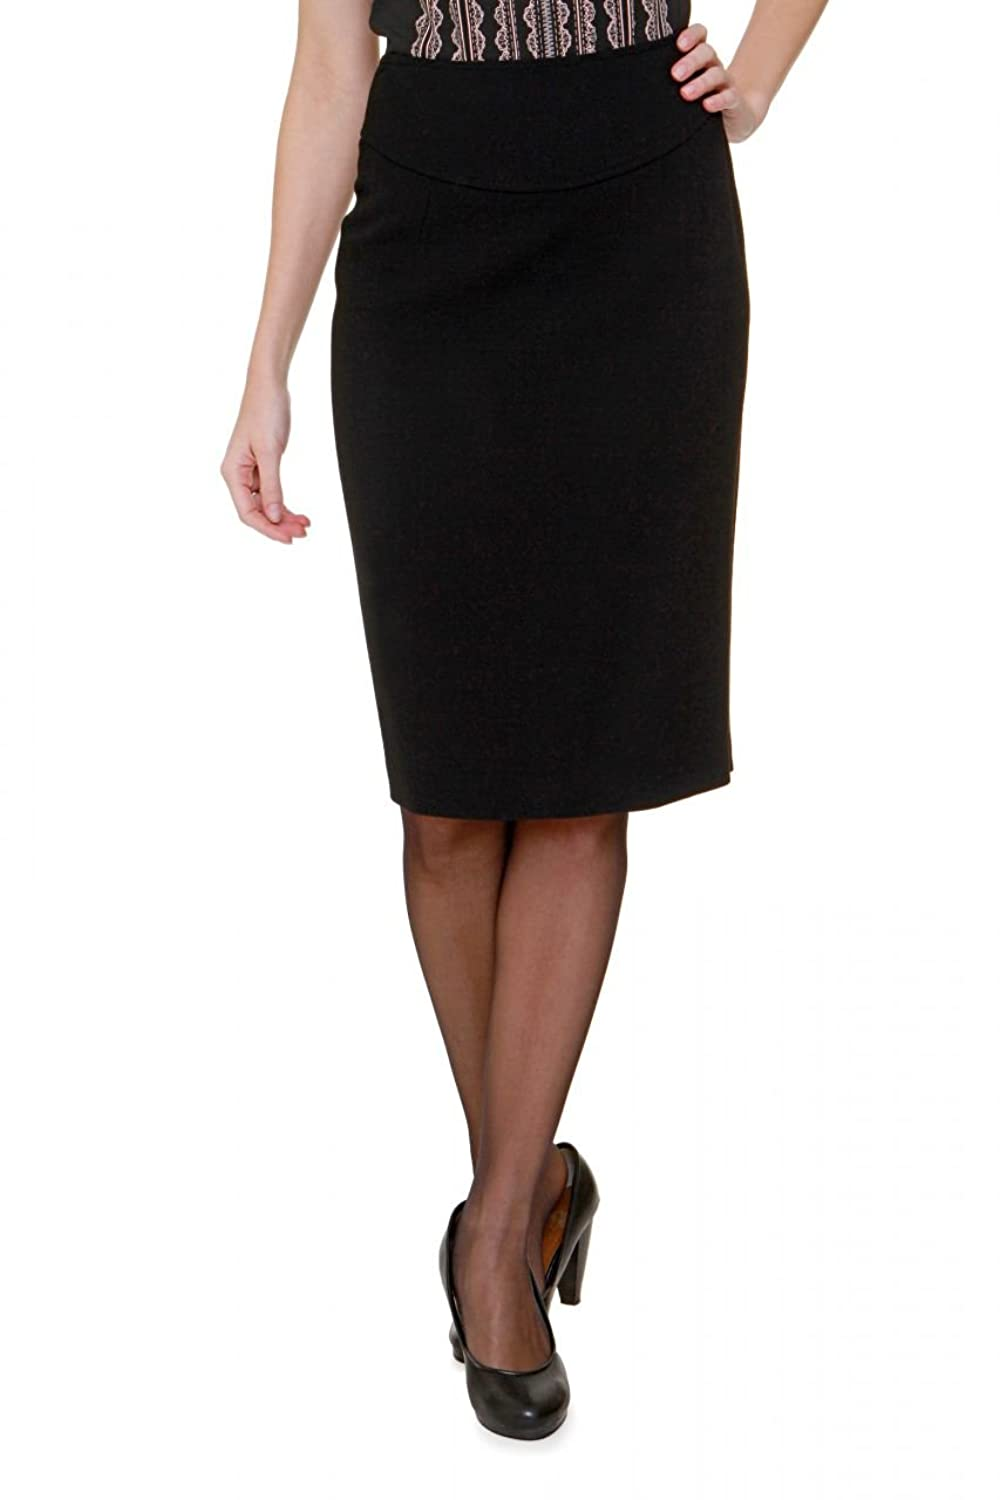 Luisa Spagnoli Pencil Skirt MARIOLA, Color: Black